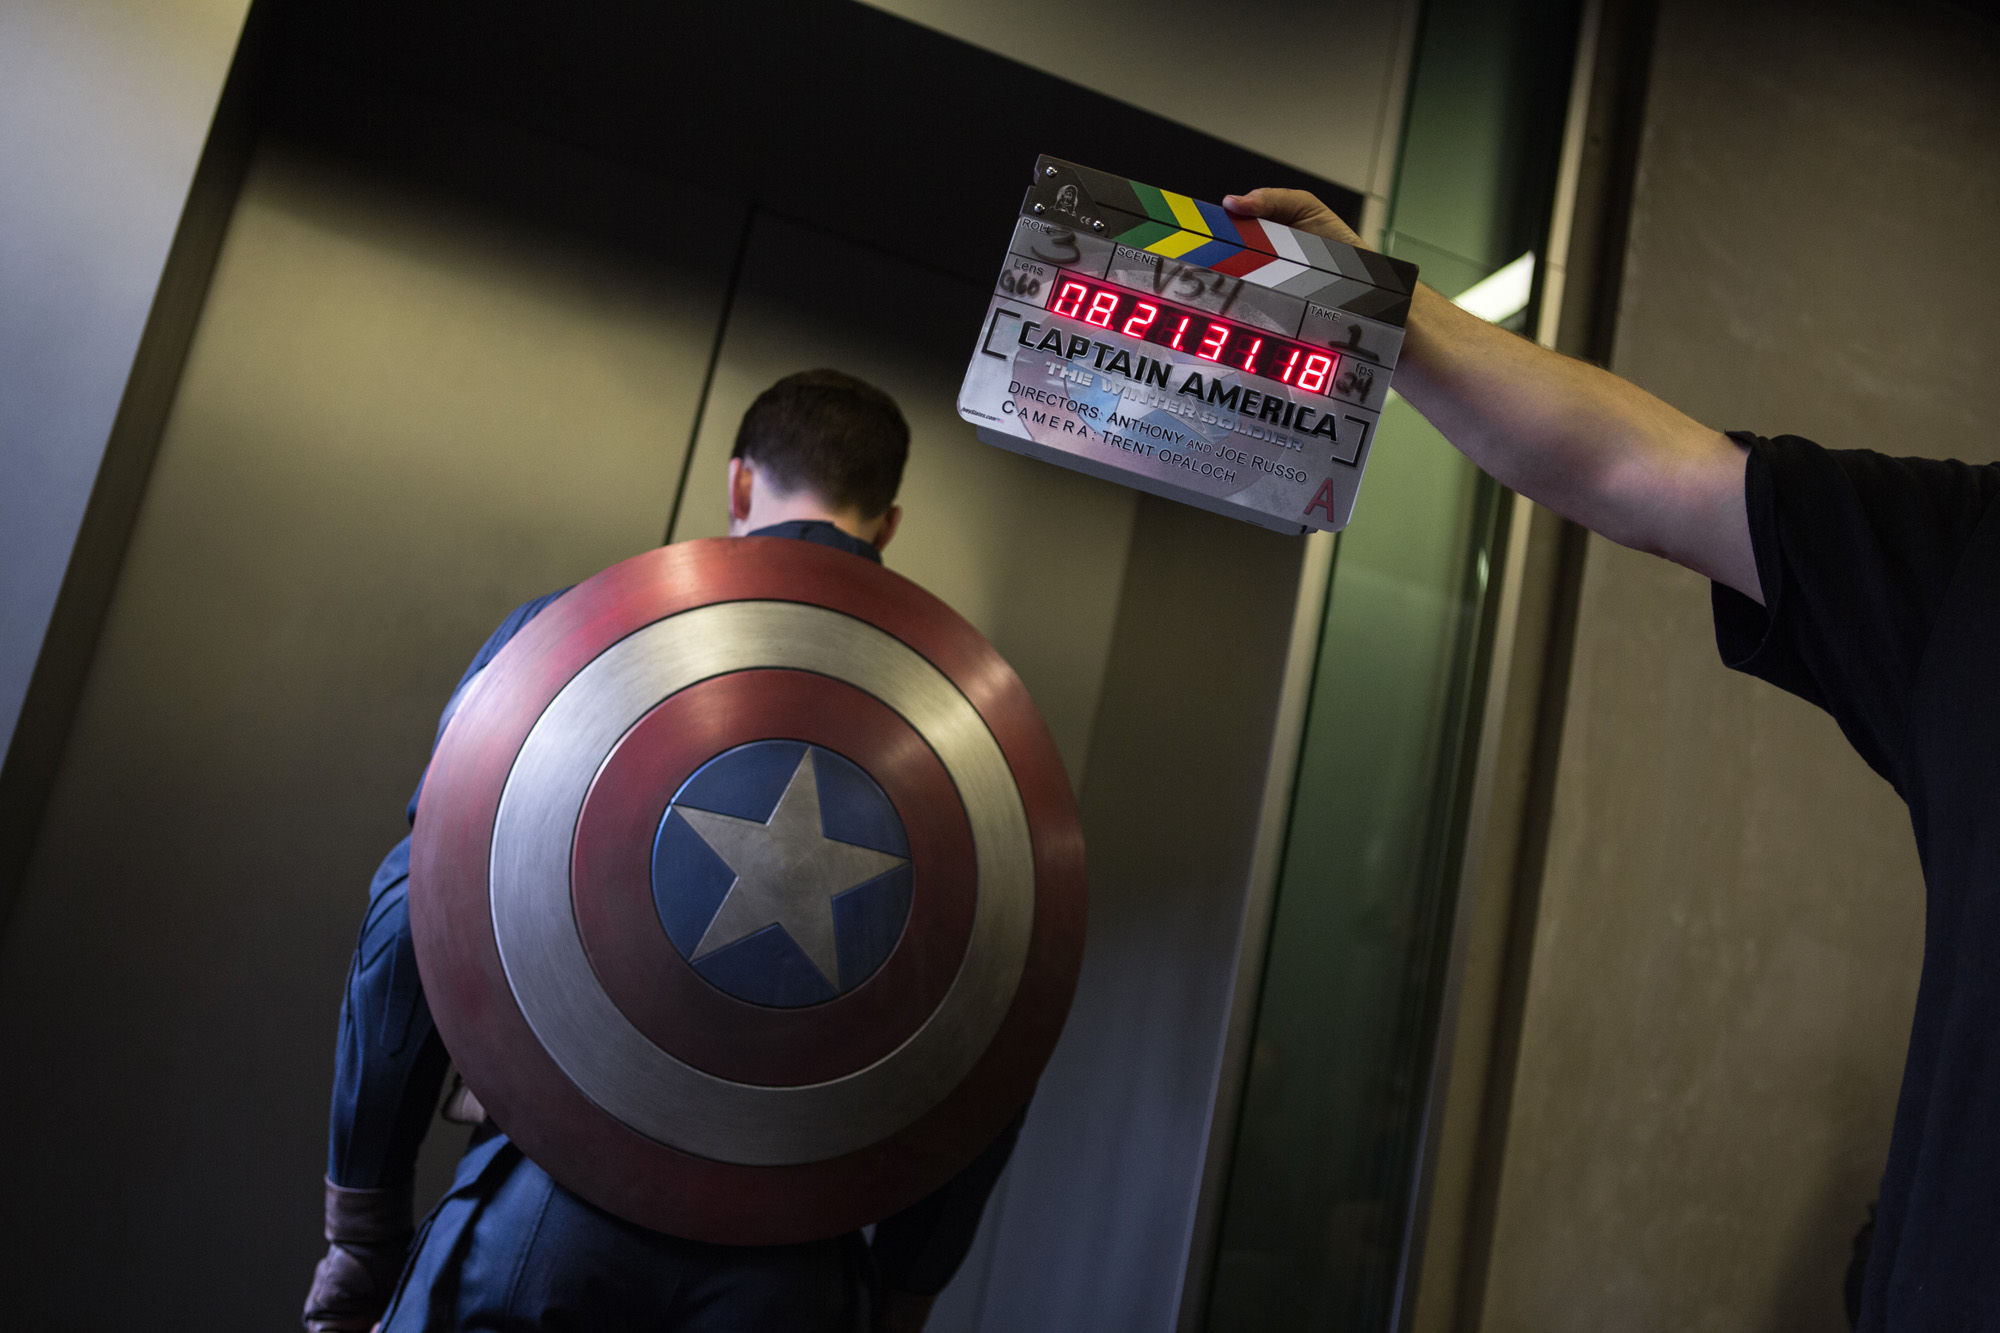 Captain America 2 Official Photo Shield Elevator Captain America 2 Official Photo   Steve with Shield enters Elevator